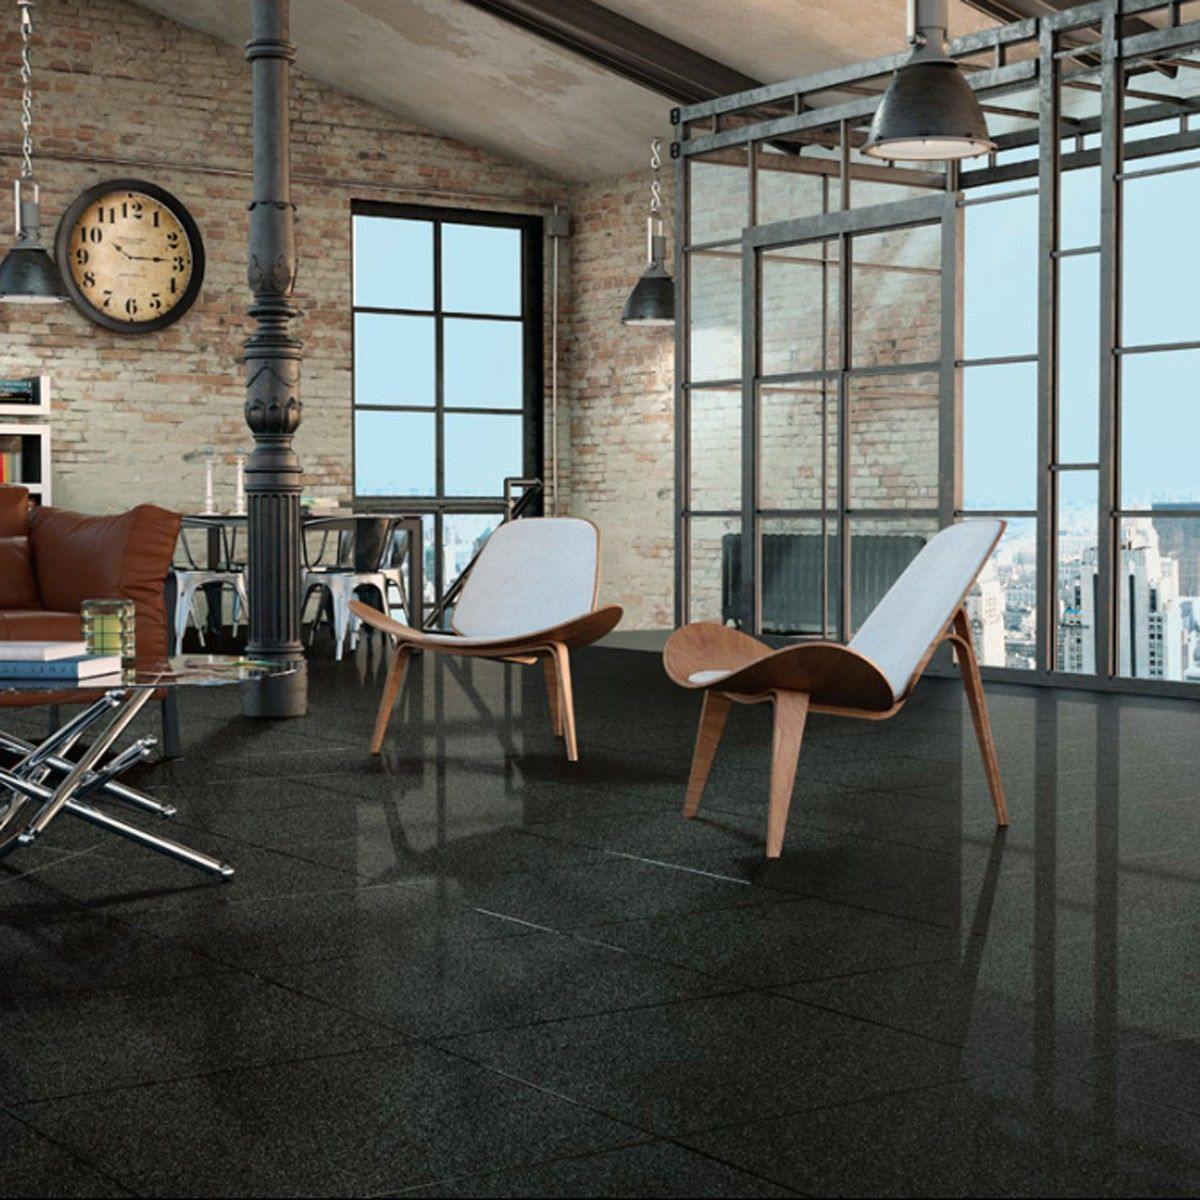 Comet sparkle is a 60x60 semi gloss sparkly porcelain floor tile comet sparkle is a 60x60 semi gloss sparkly porcelain floor tile with a thickness of 8mm dailygadgetfo Gallery